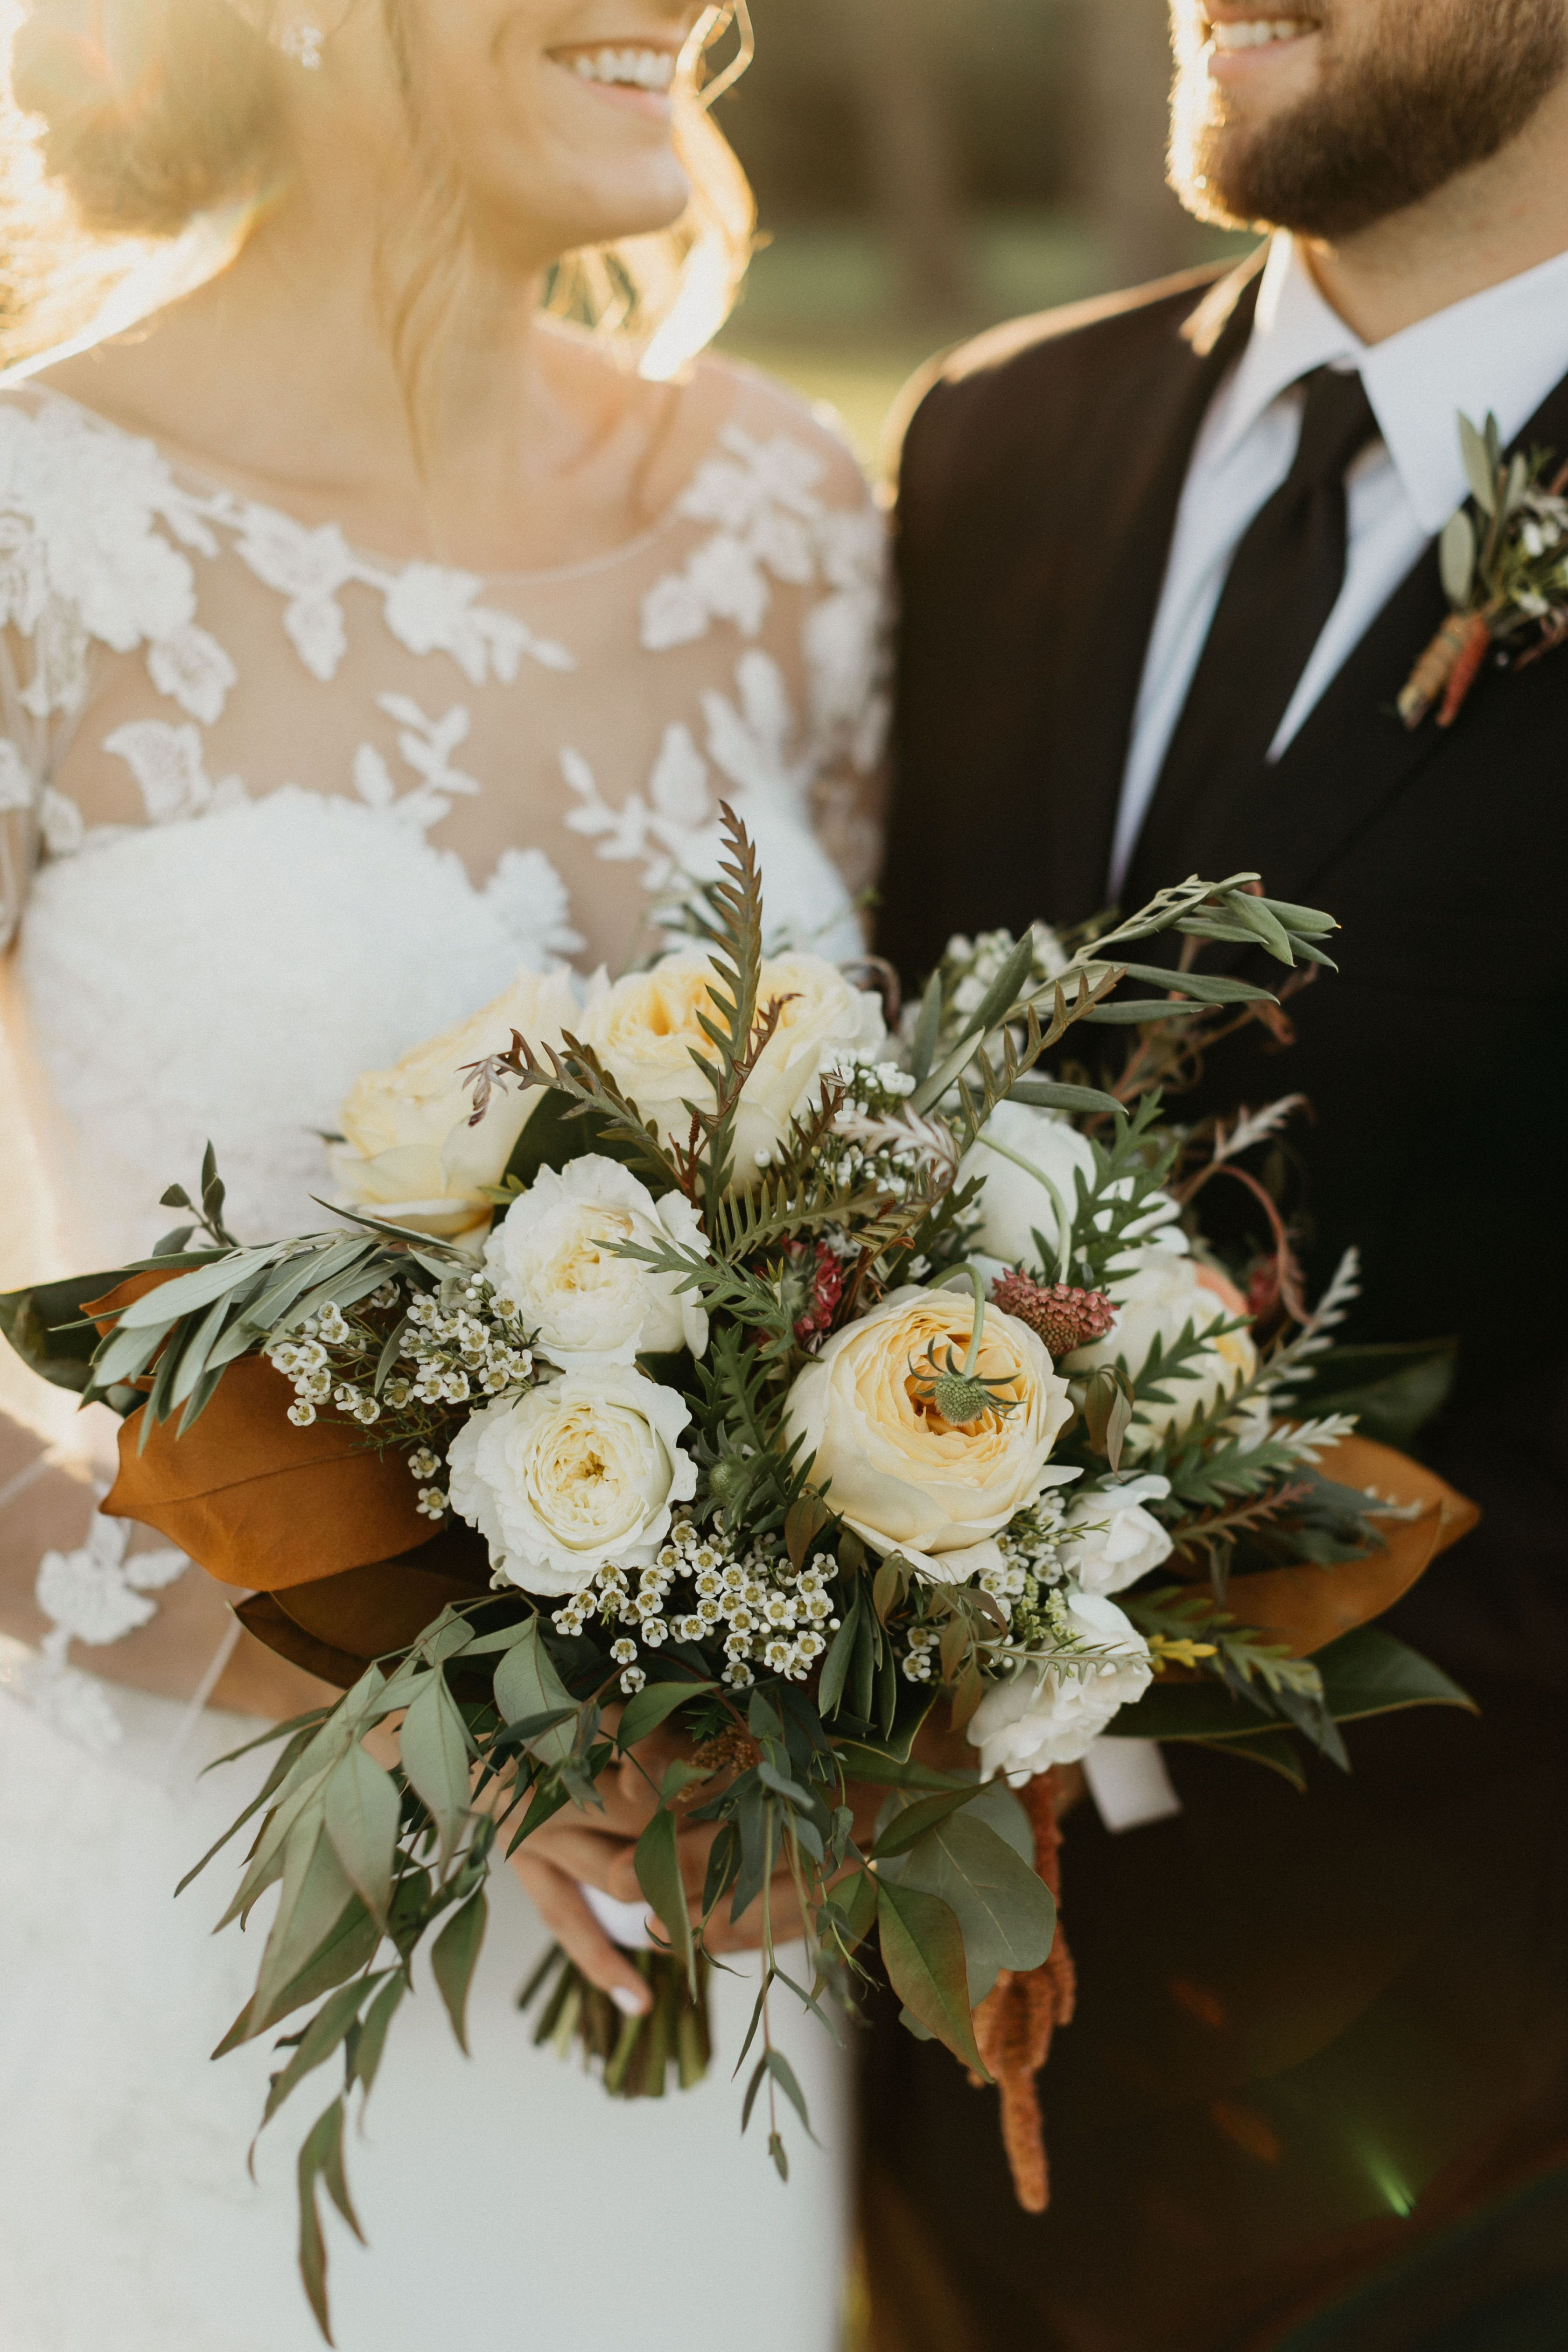 This Bohemian Wedding Bouquet By Vineandpetals Is Such A